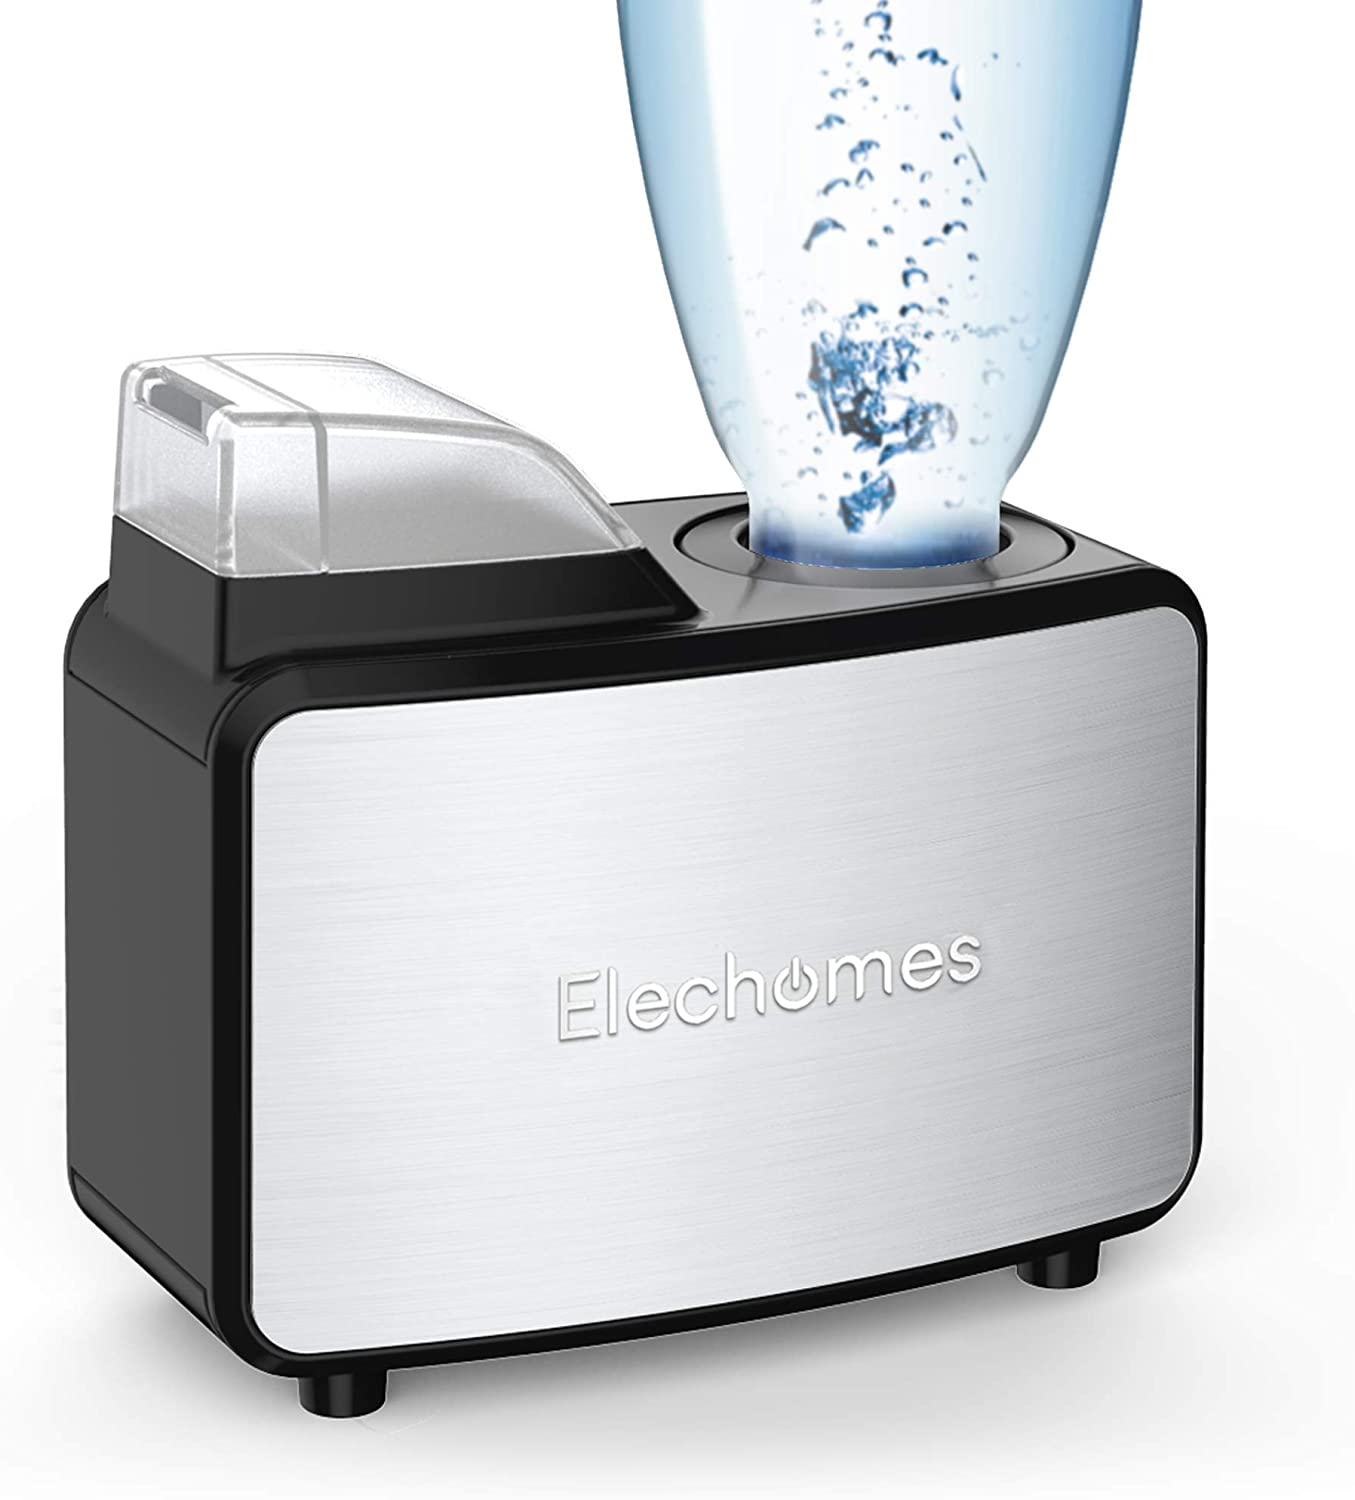 Elechomes Ultrasonic Mini Cool Mist Humidifier Personal Portable Diffuser Water Bottle Humidifiers for Travel Home Office Hotel, with Storage Bag, Auto Shut-Off